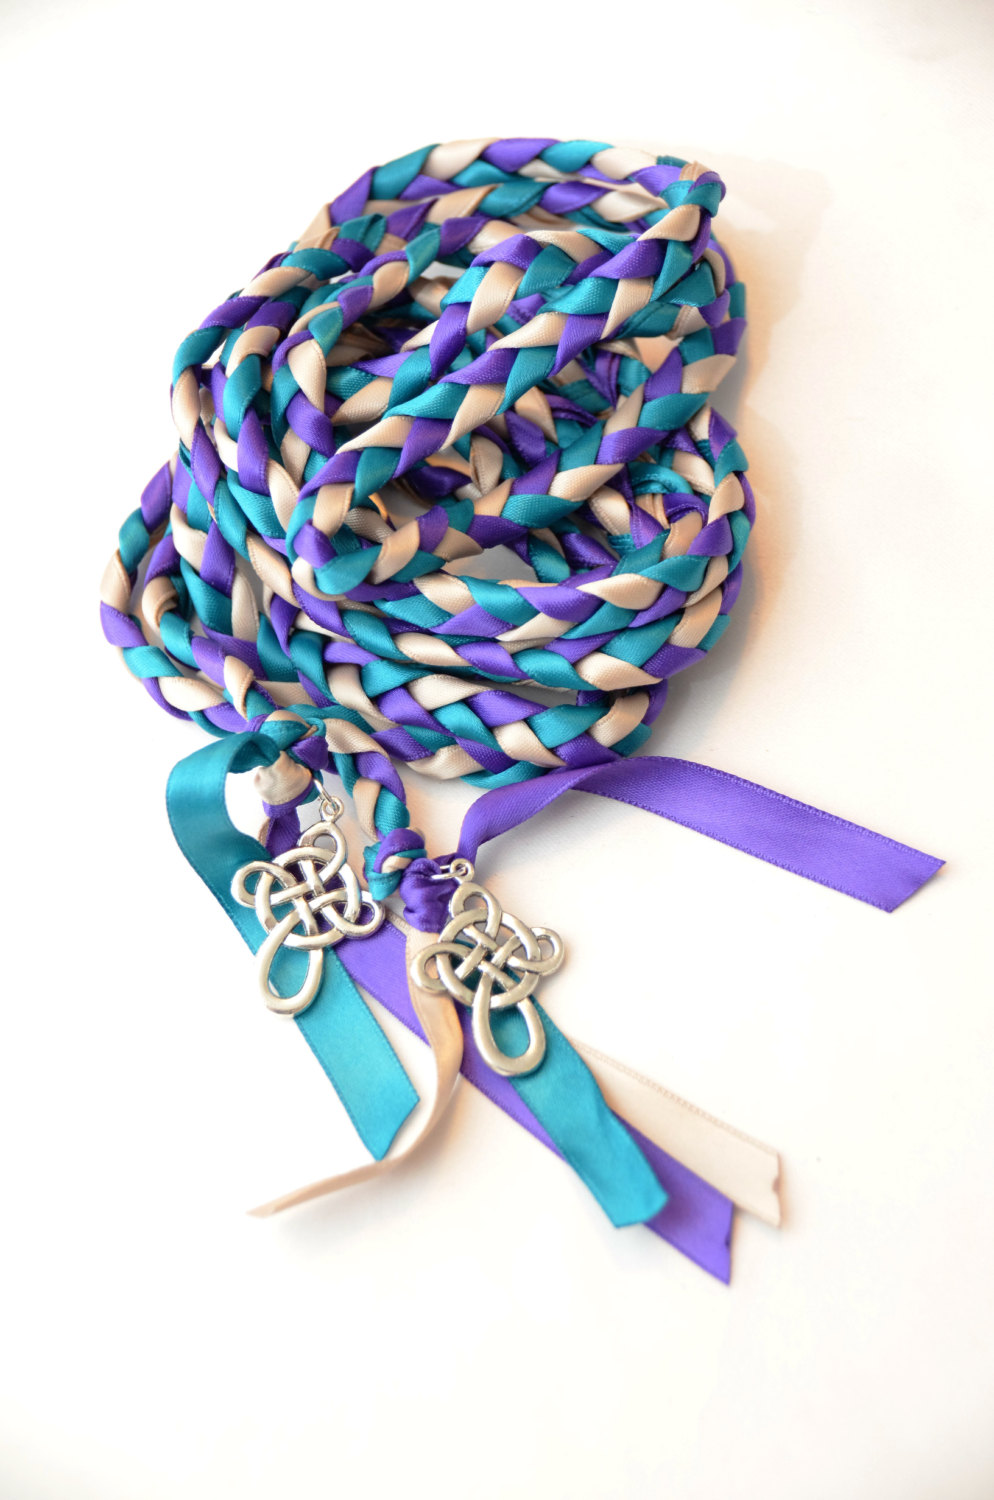 handfasting cords | via what is handfasting: http://emmalinebride.com/ceremony/what-is-handfasting-ceremony/